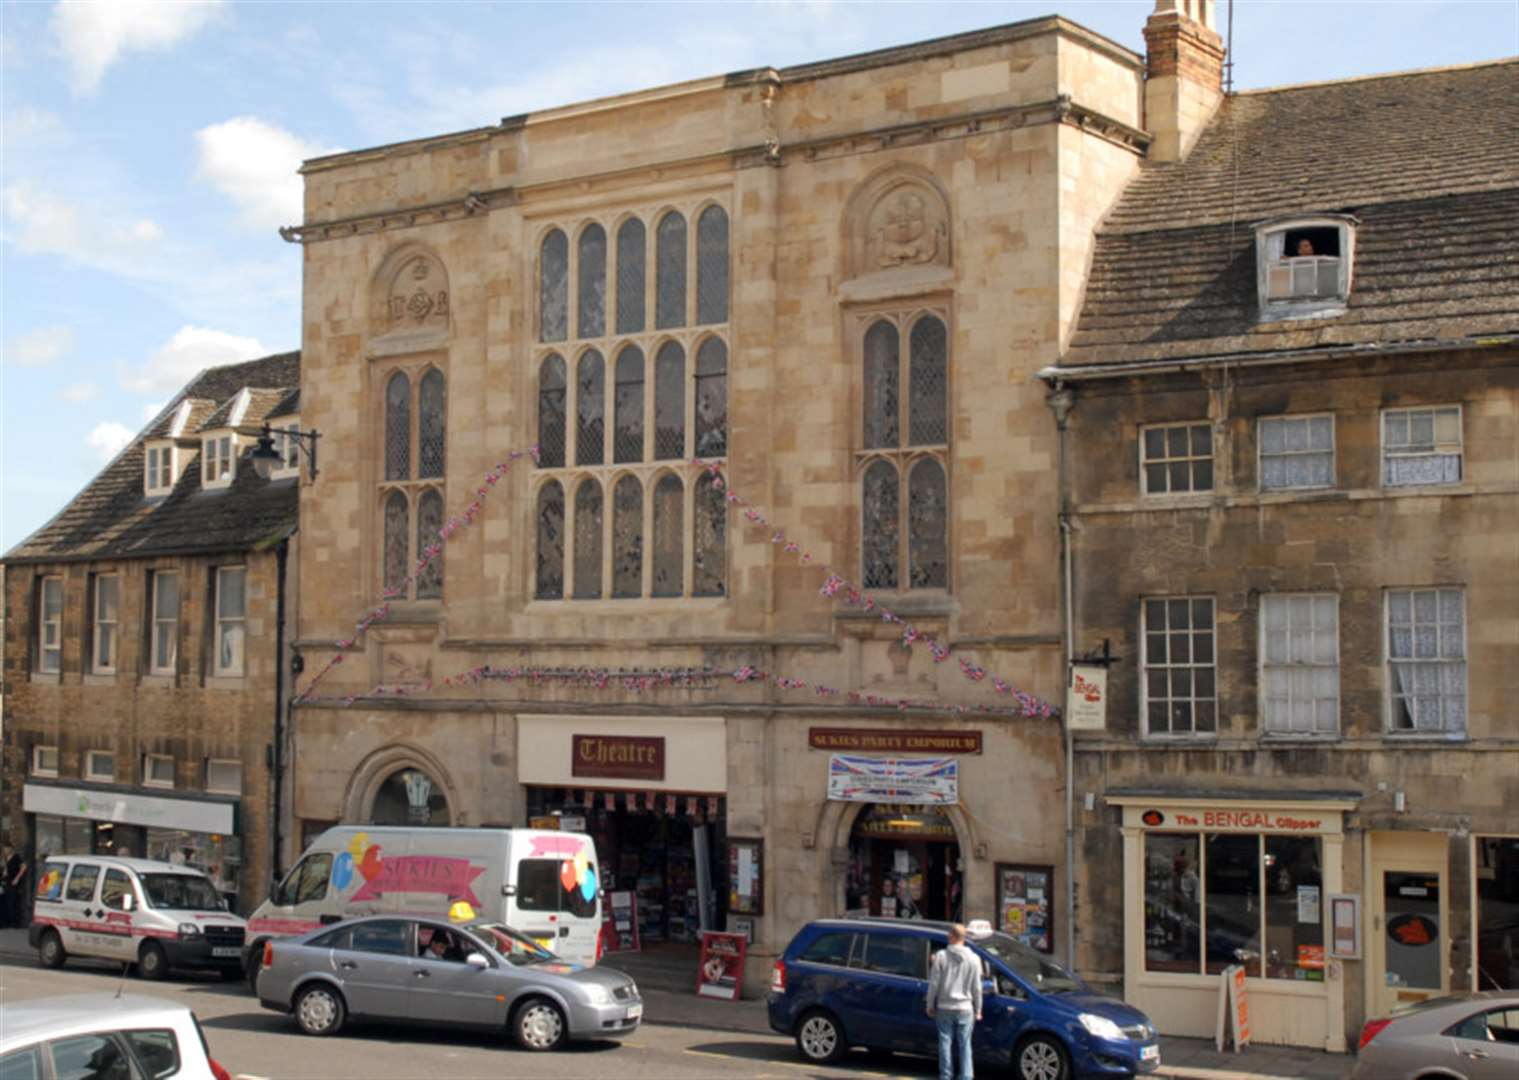 Tonsy Stockwell Psychic Medium event Stamford Corn Exchange Theatre